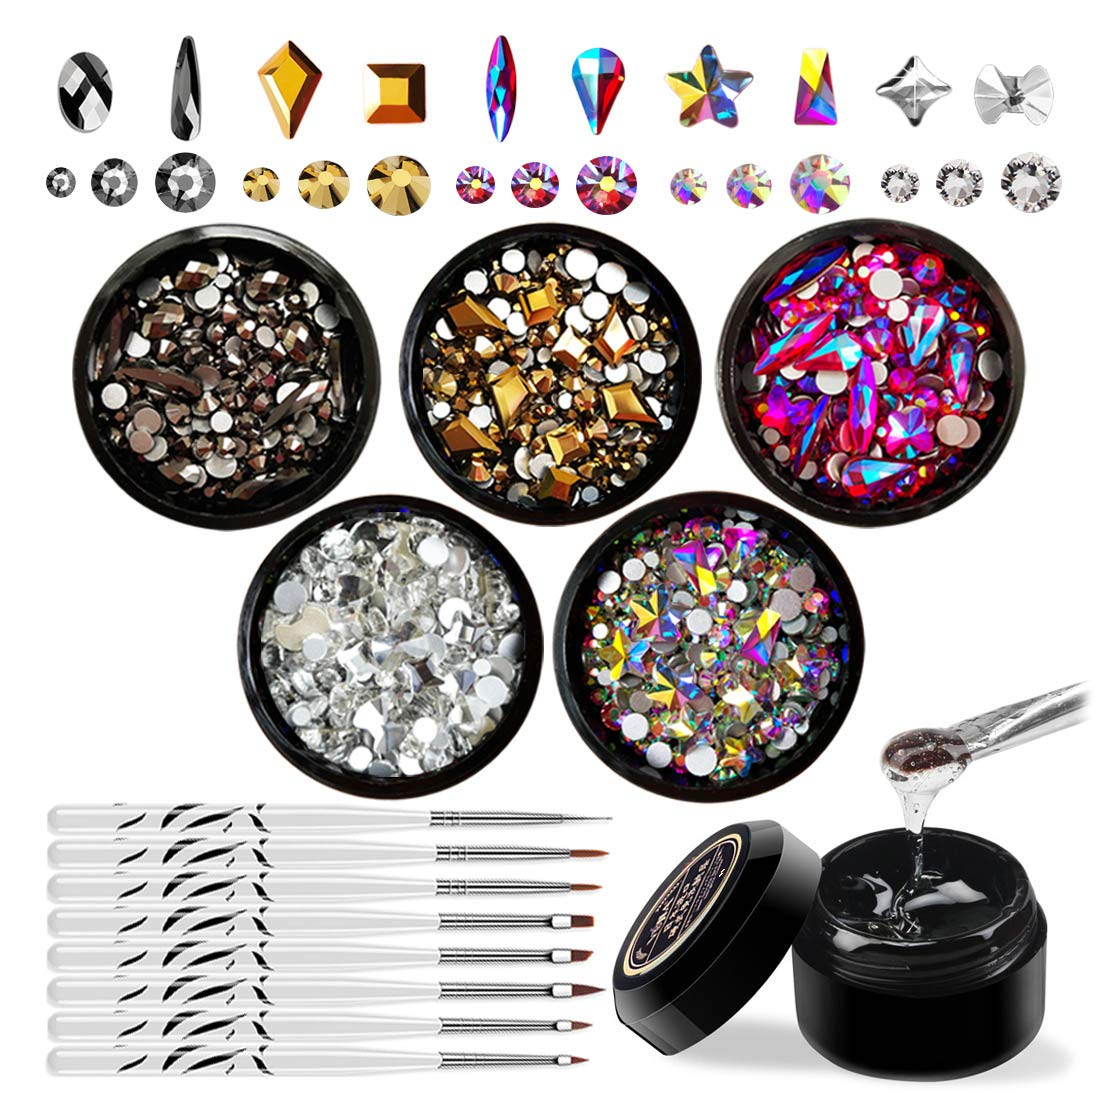 Nail Art Rhinestones Set with Glue and Tools, Mixed Flatback Crystal Rhinestones with 5 Colors and Multiple Shapes, 8ml Adhesive Resin Gel and 1Pc Dotting Pen and 7Pcs Brush Set by ULGAI